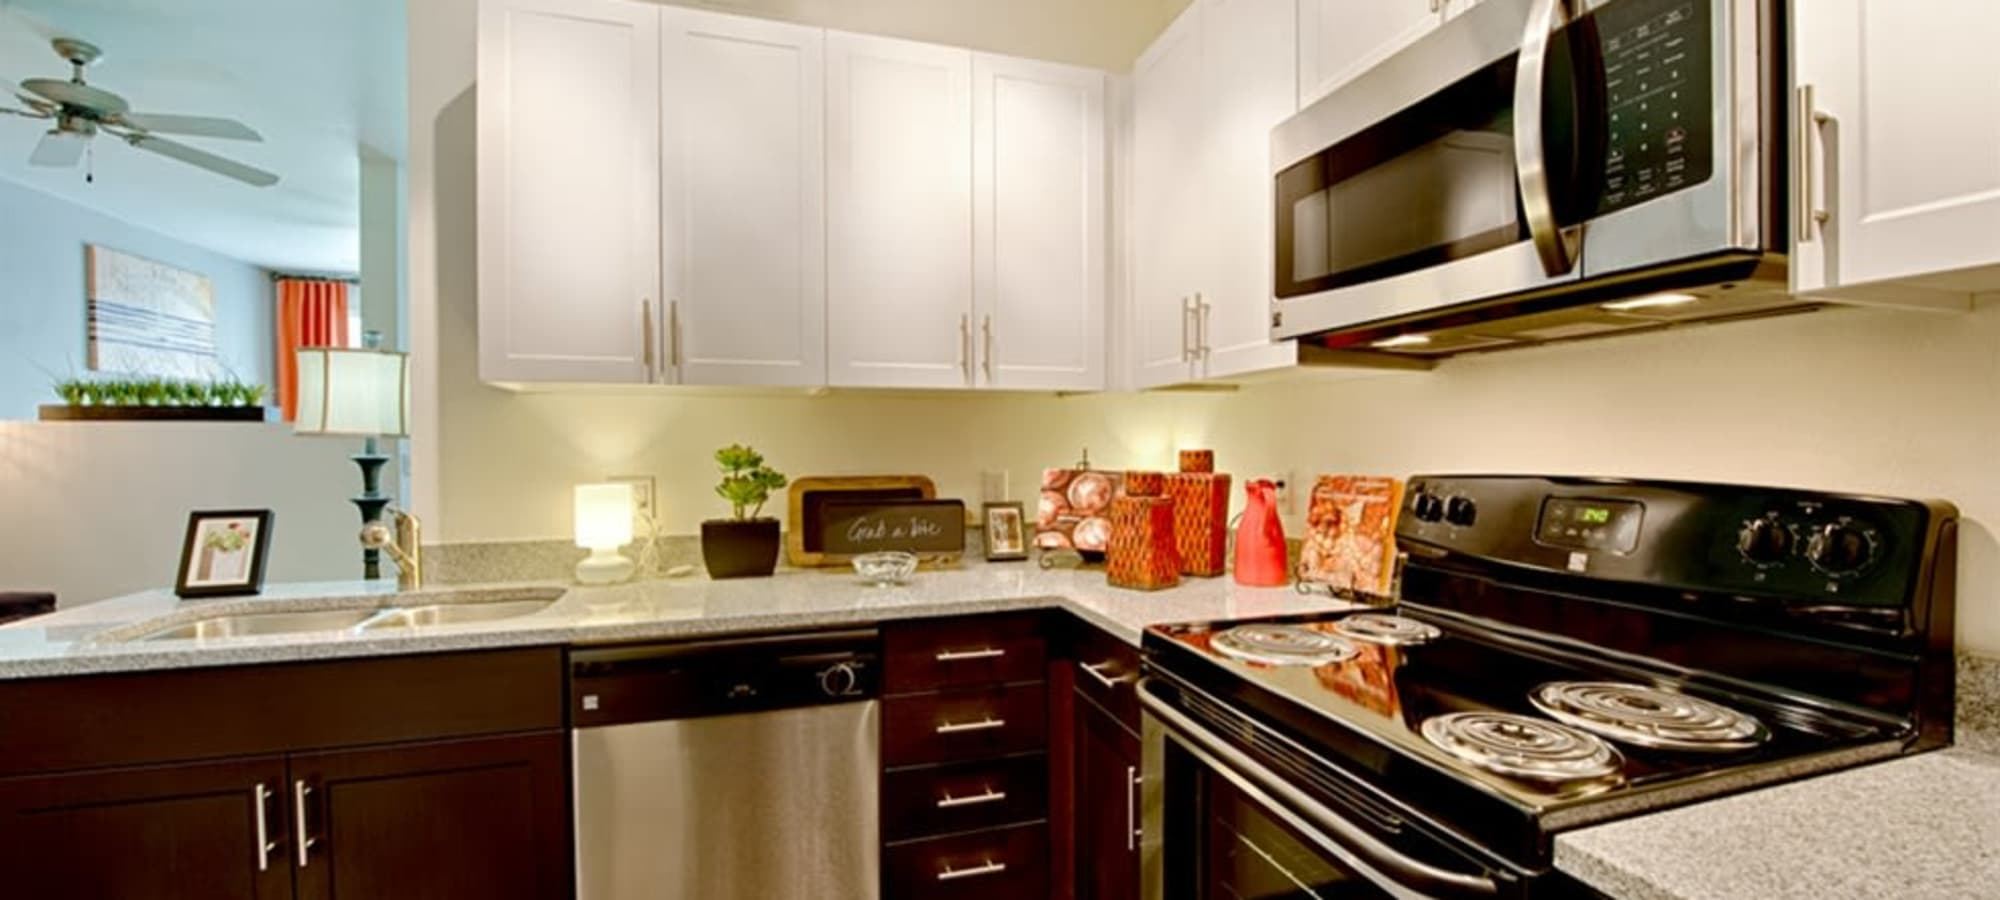 Open kitchen with granite counter tops at Cactus Forty-2 in Phoenix, Arizona